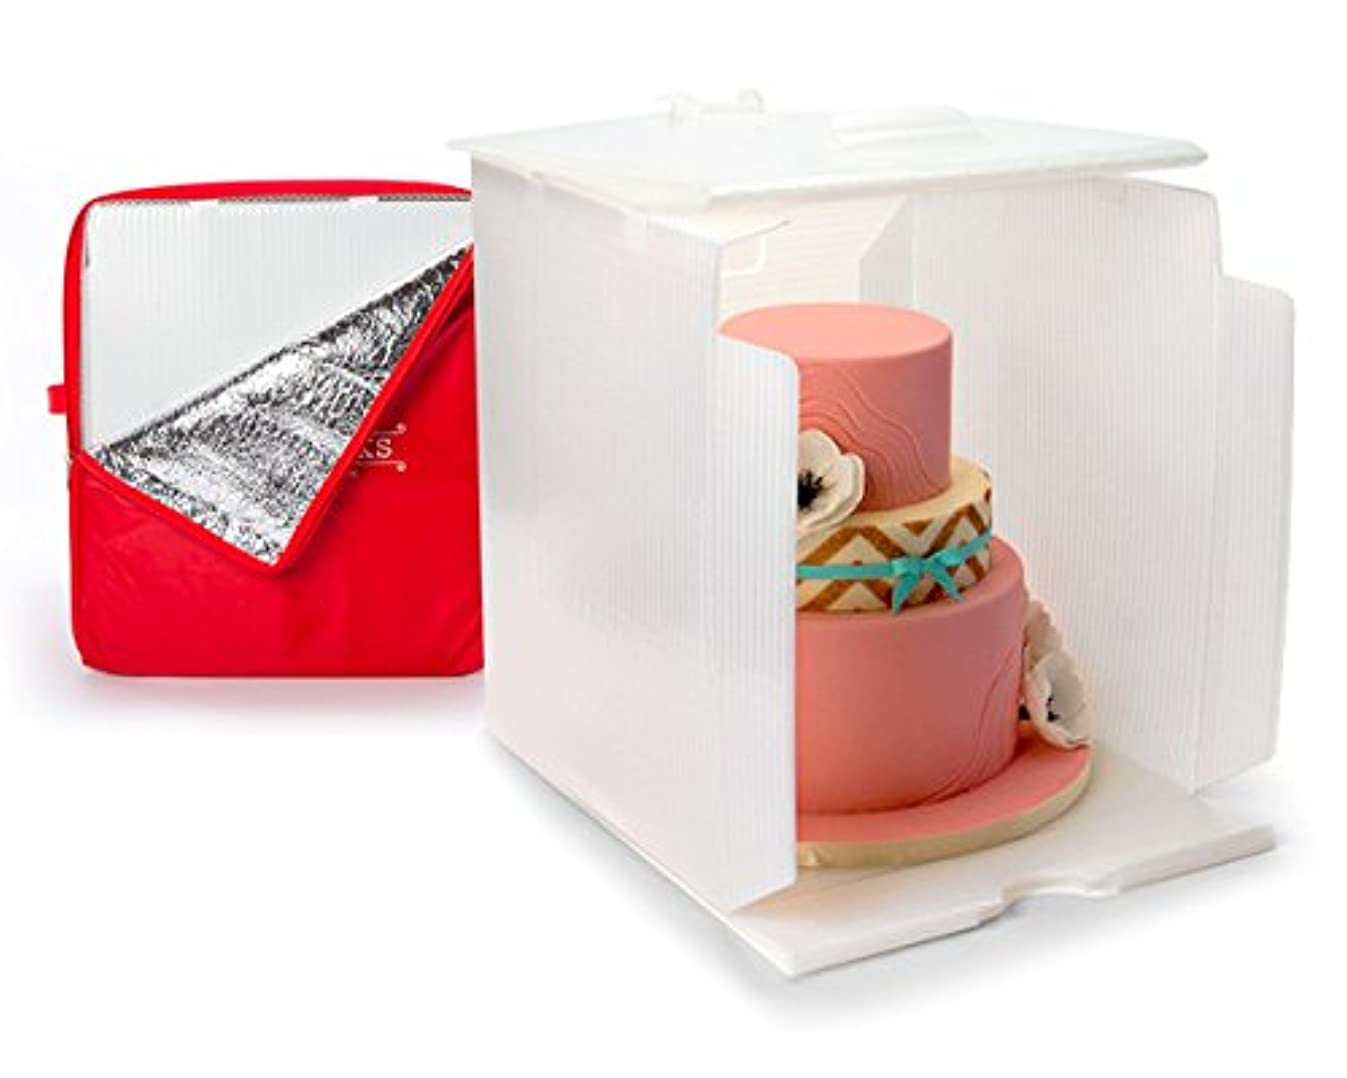 Innovative Sugarworks Small Cake Porter with Insulated Cover and Cake Carrier, 14